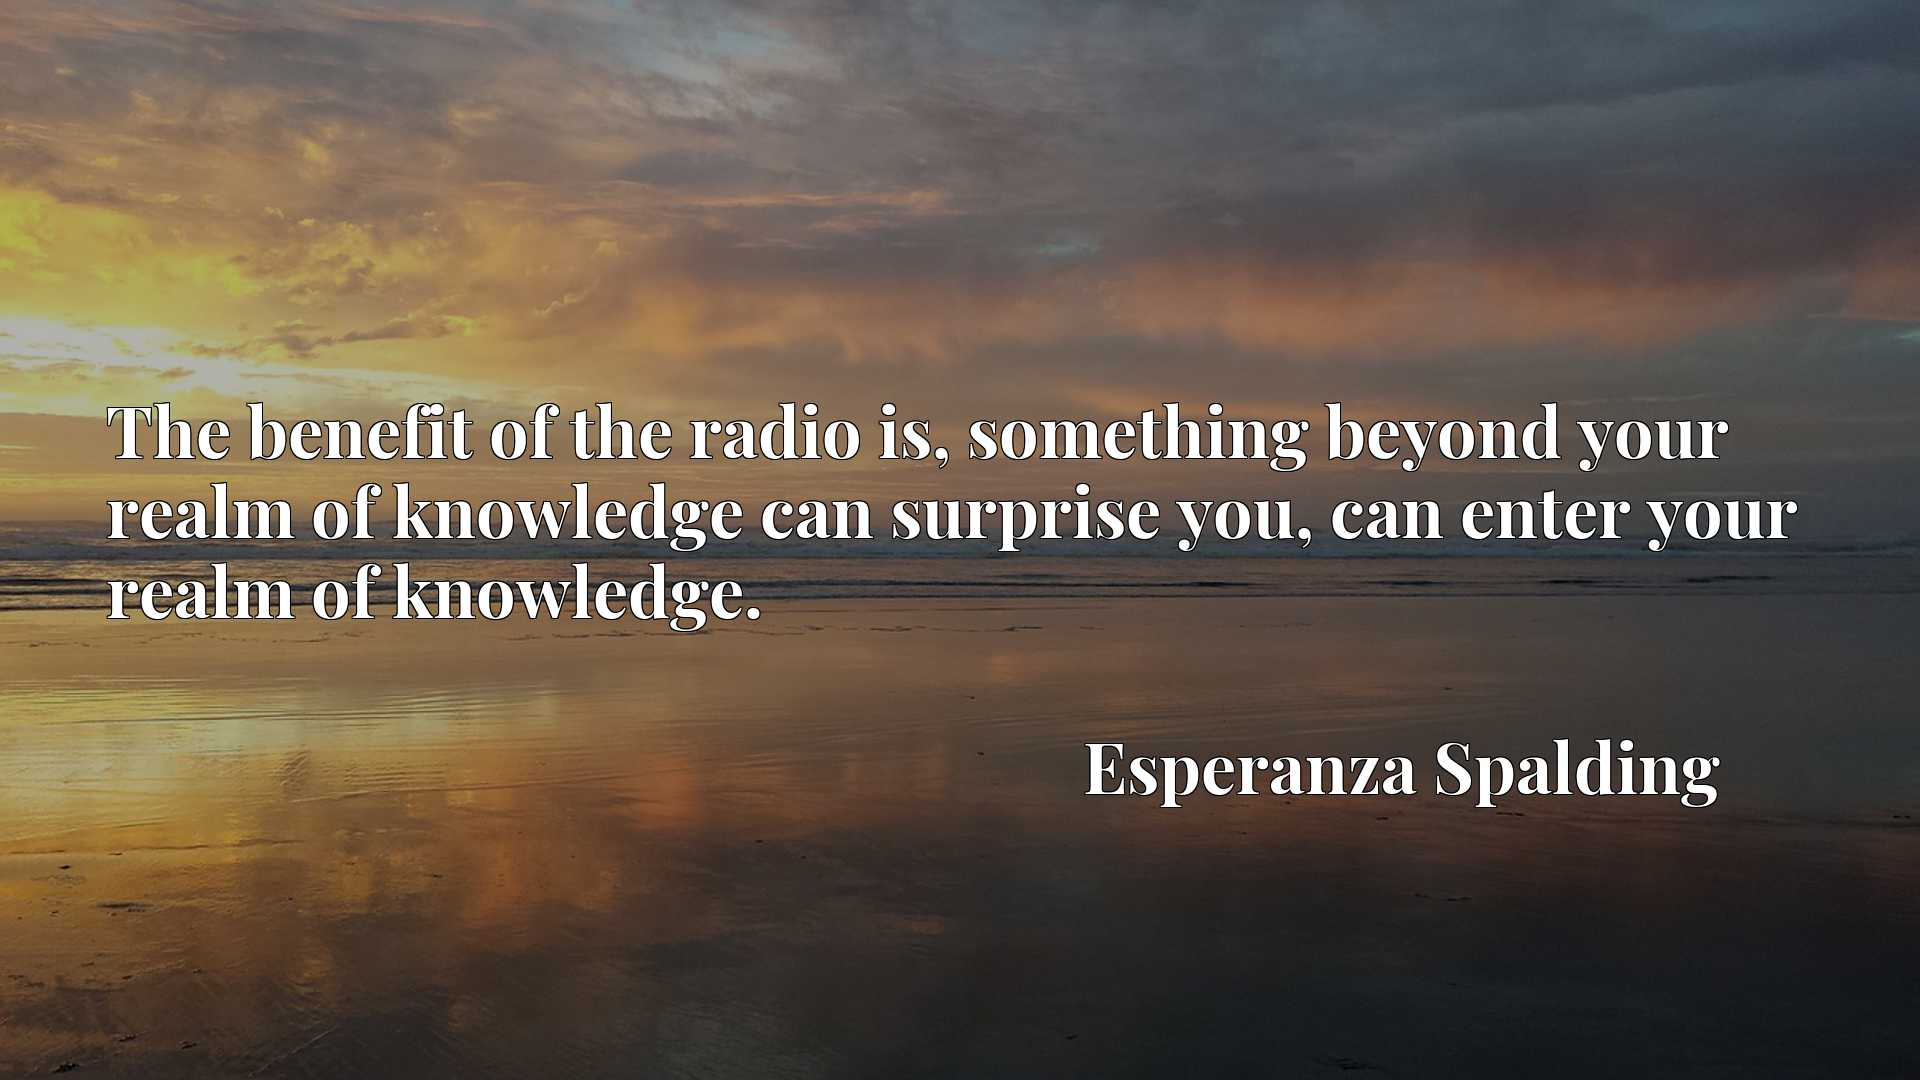 The benefit of the radio is, something beyond your realm of knowledge can surprise you, can enter your realm of knowledge.